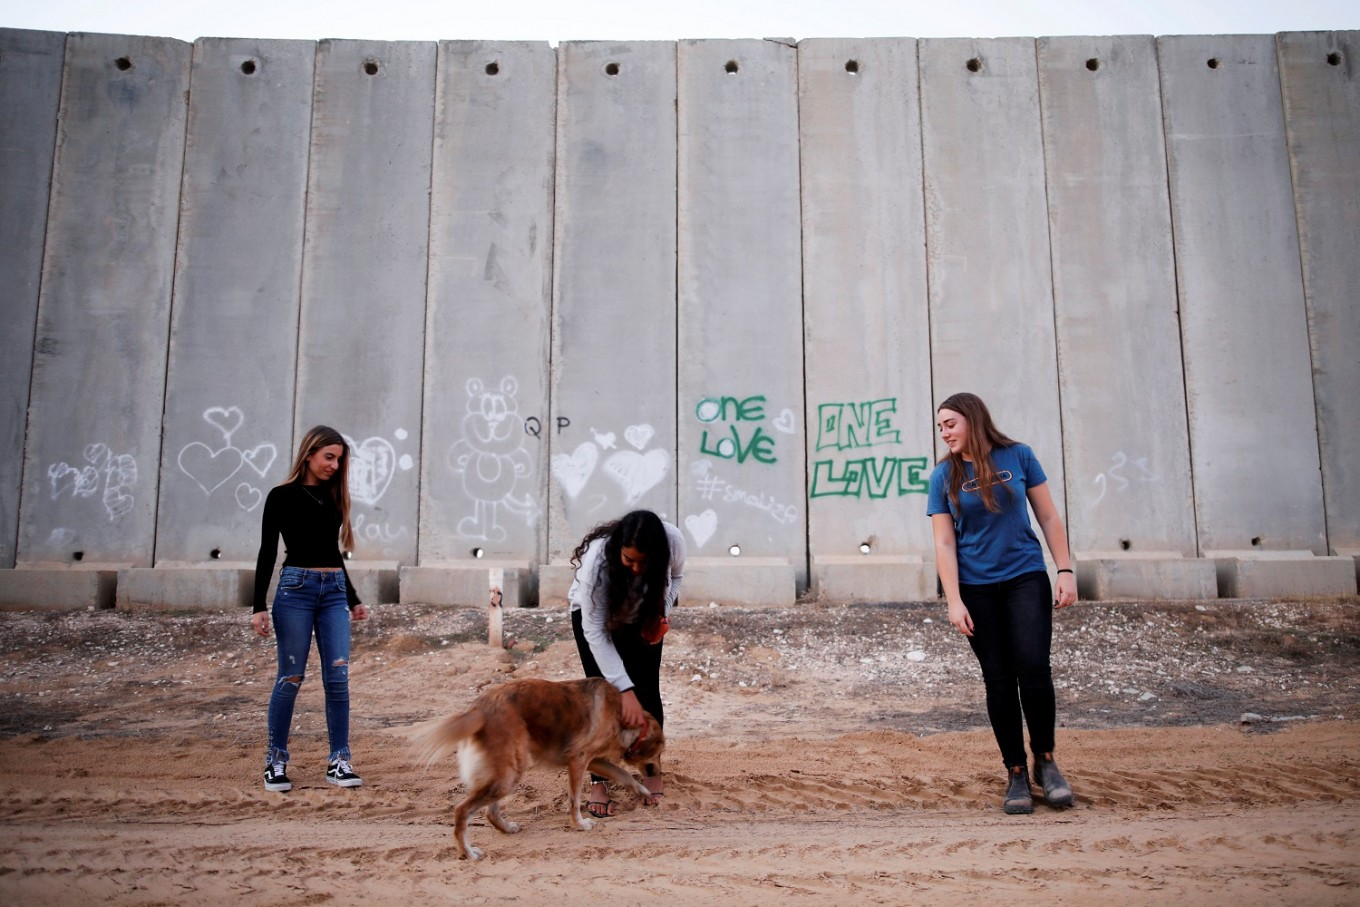 Divided by war, Israel and Gaza's Instagrammers tell their own stories